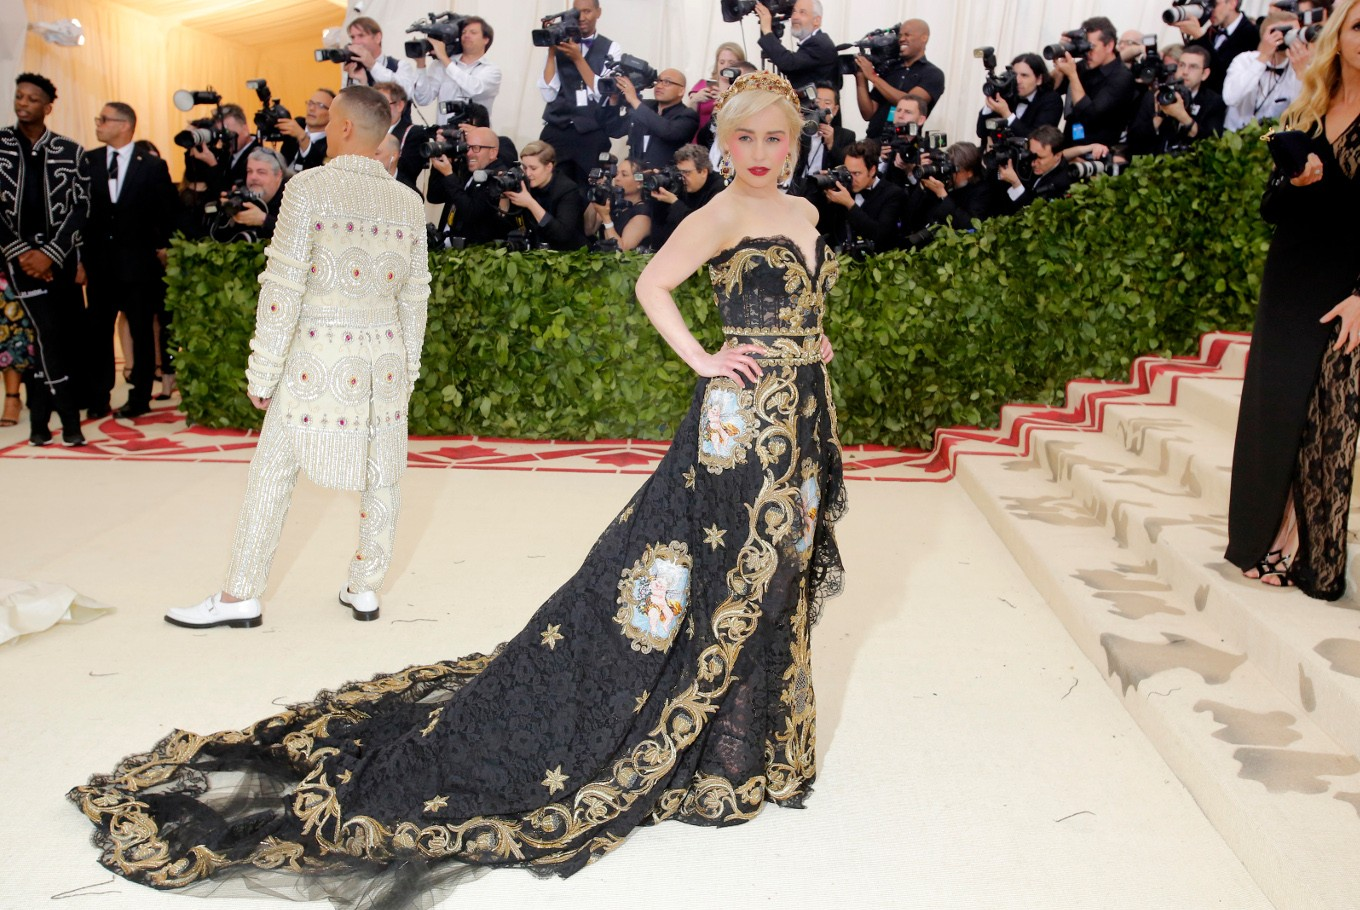 Actress Emilia Clarke arrives at the Metropolitan Museum of Art Costume Institute Gala (Met Gala) to celebrate the opening of 'Heavenly Bodies: Fashion and the Catholic Imagination' in the Manhattan borough of New York, U.S., May 7, 2018.